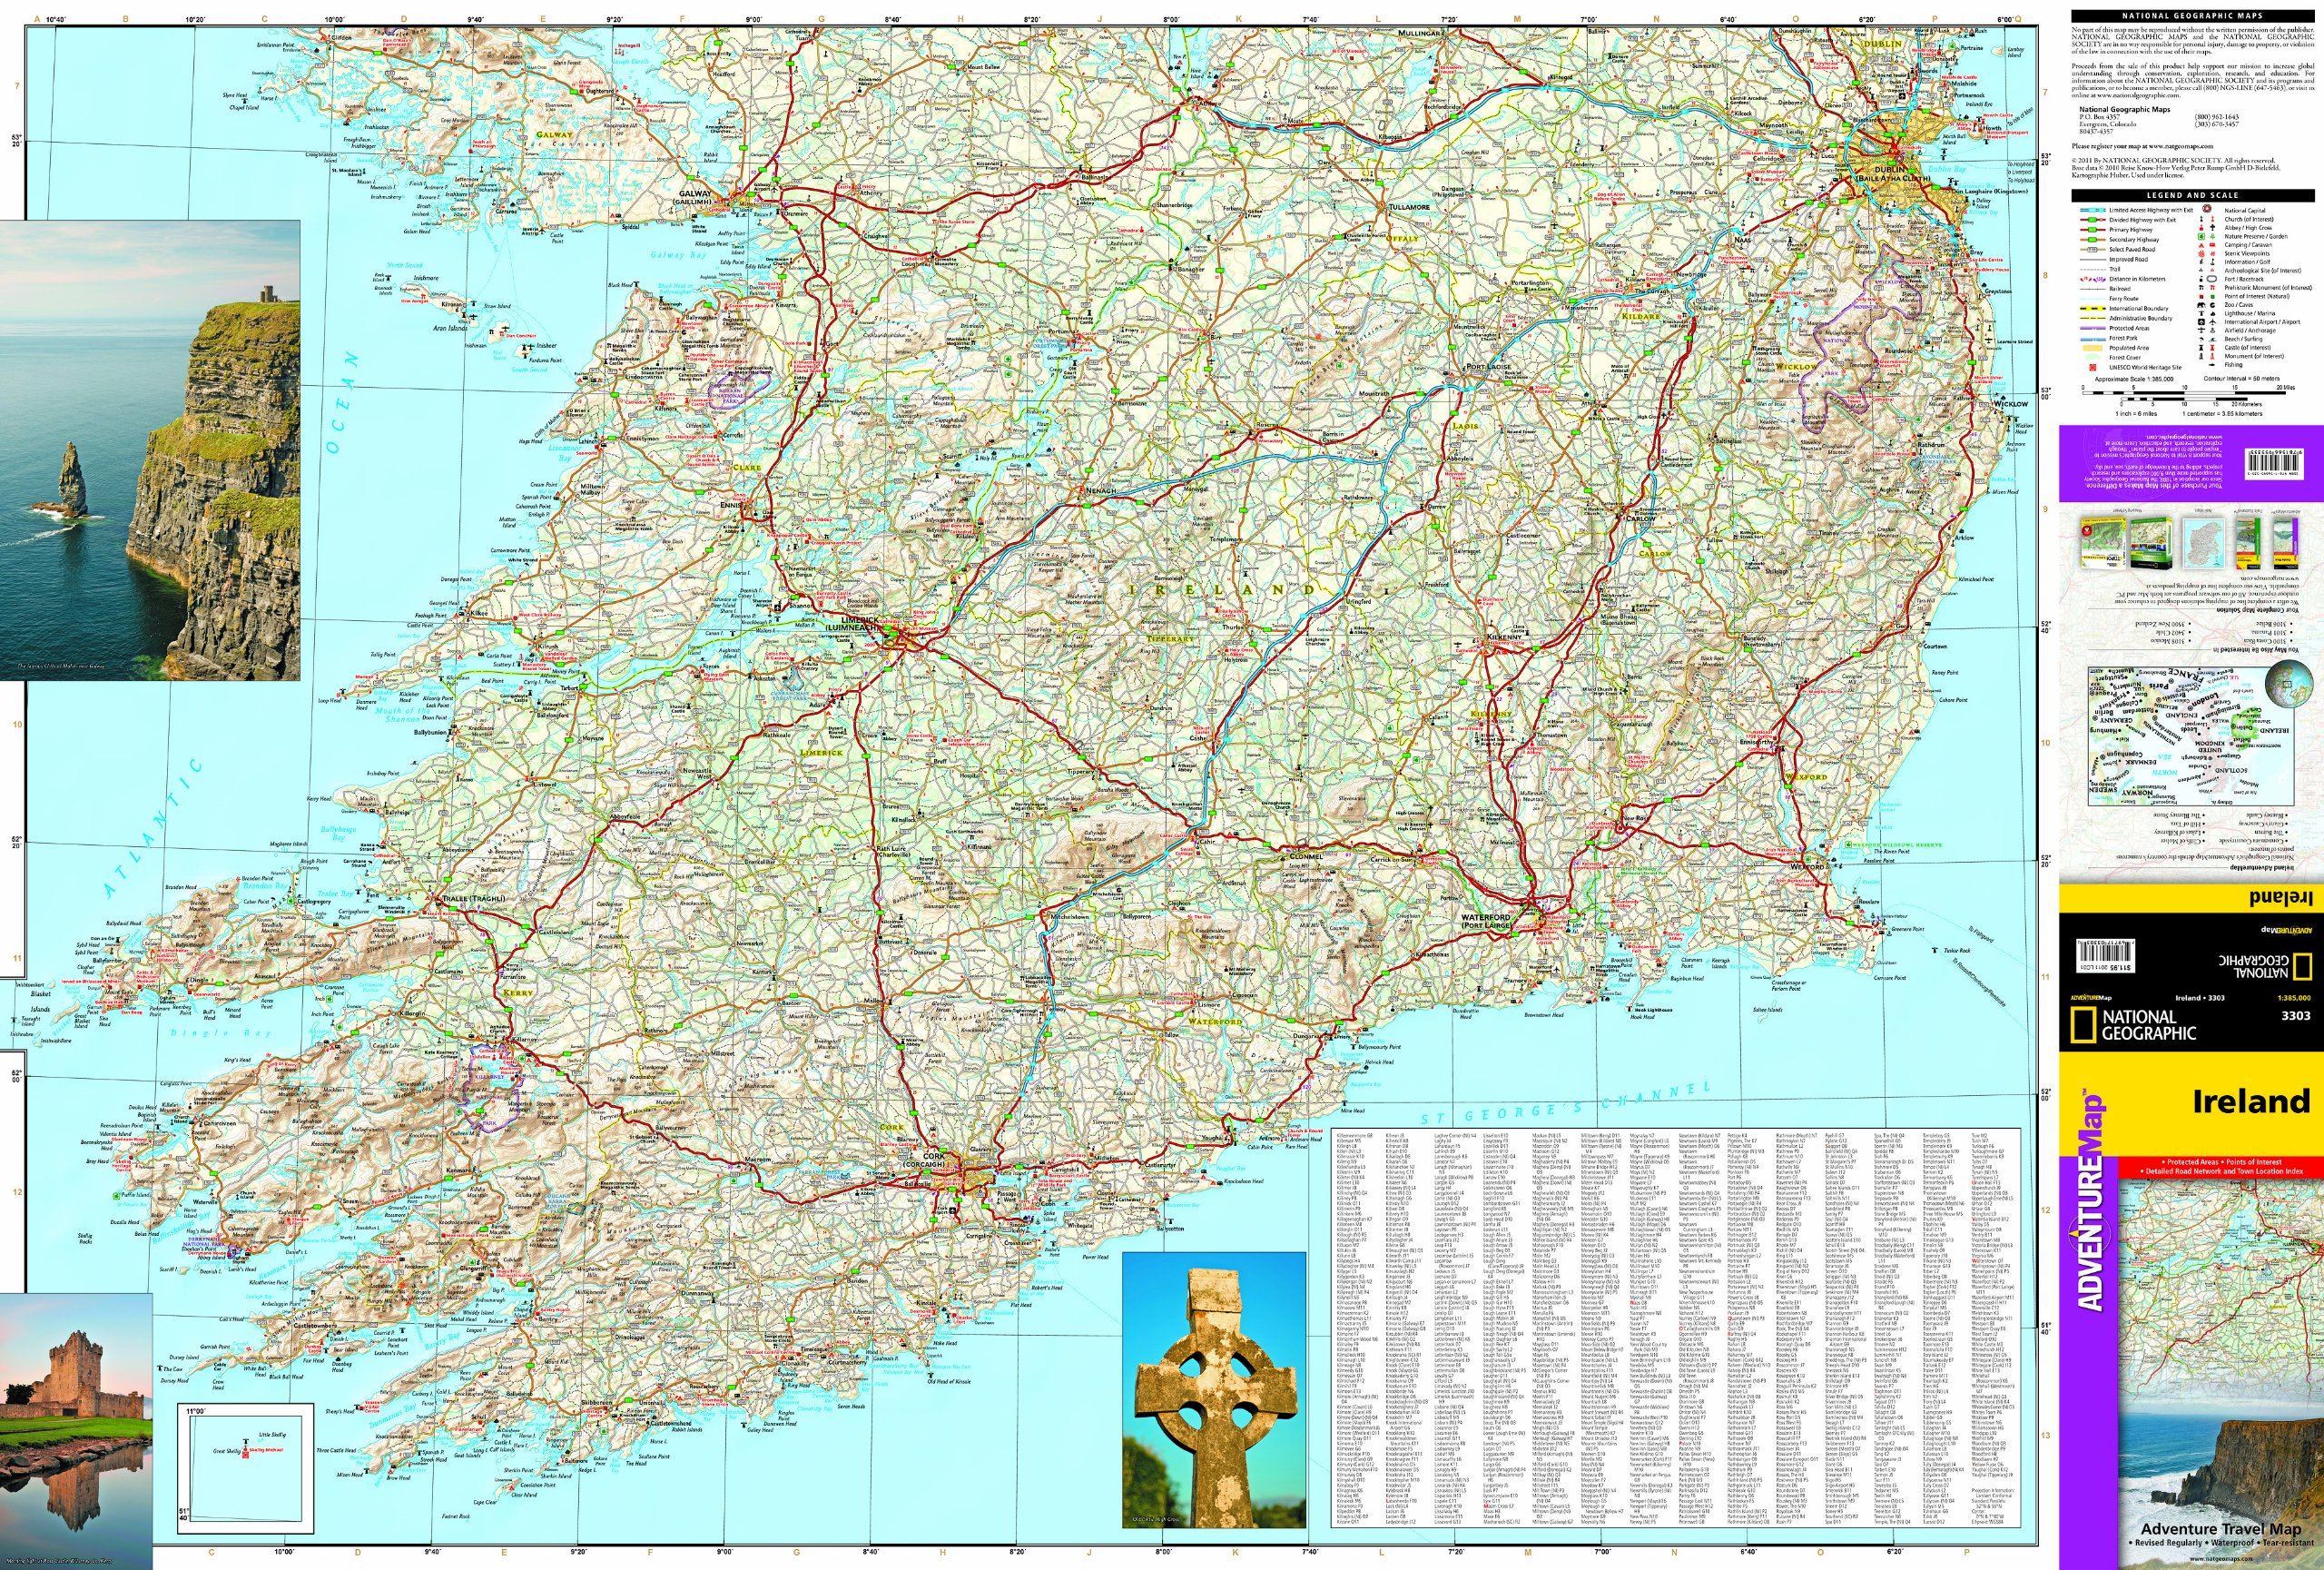 Ireland national geographic adventure map national geographic ireland national geographic adventure map national geographic maps adventure 9781566955355 amazon books sciox Images